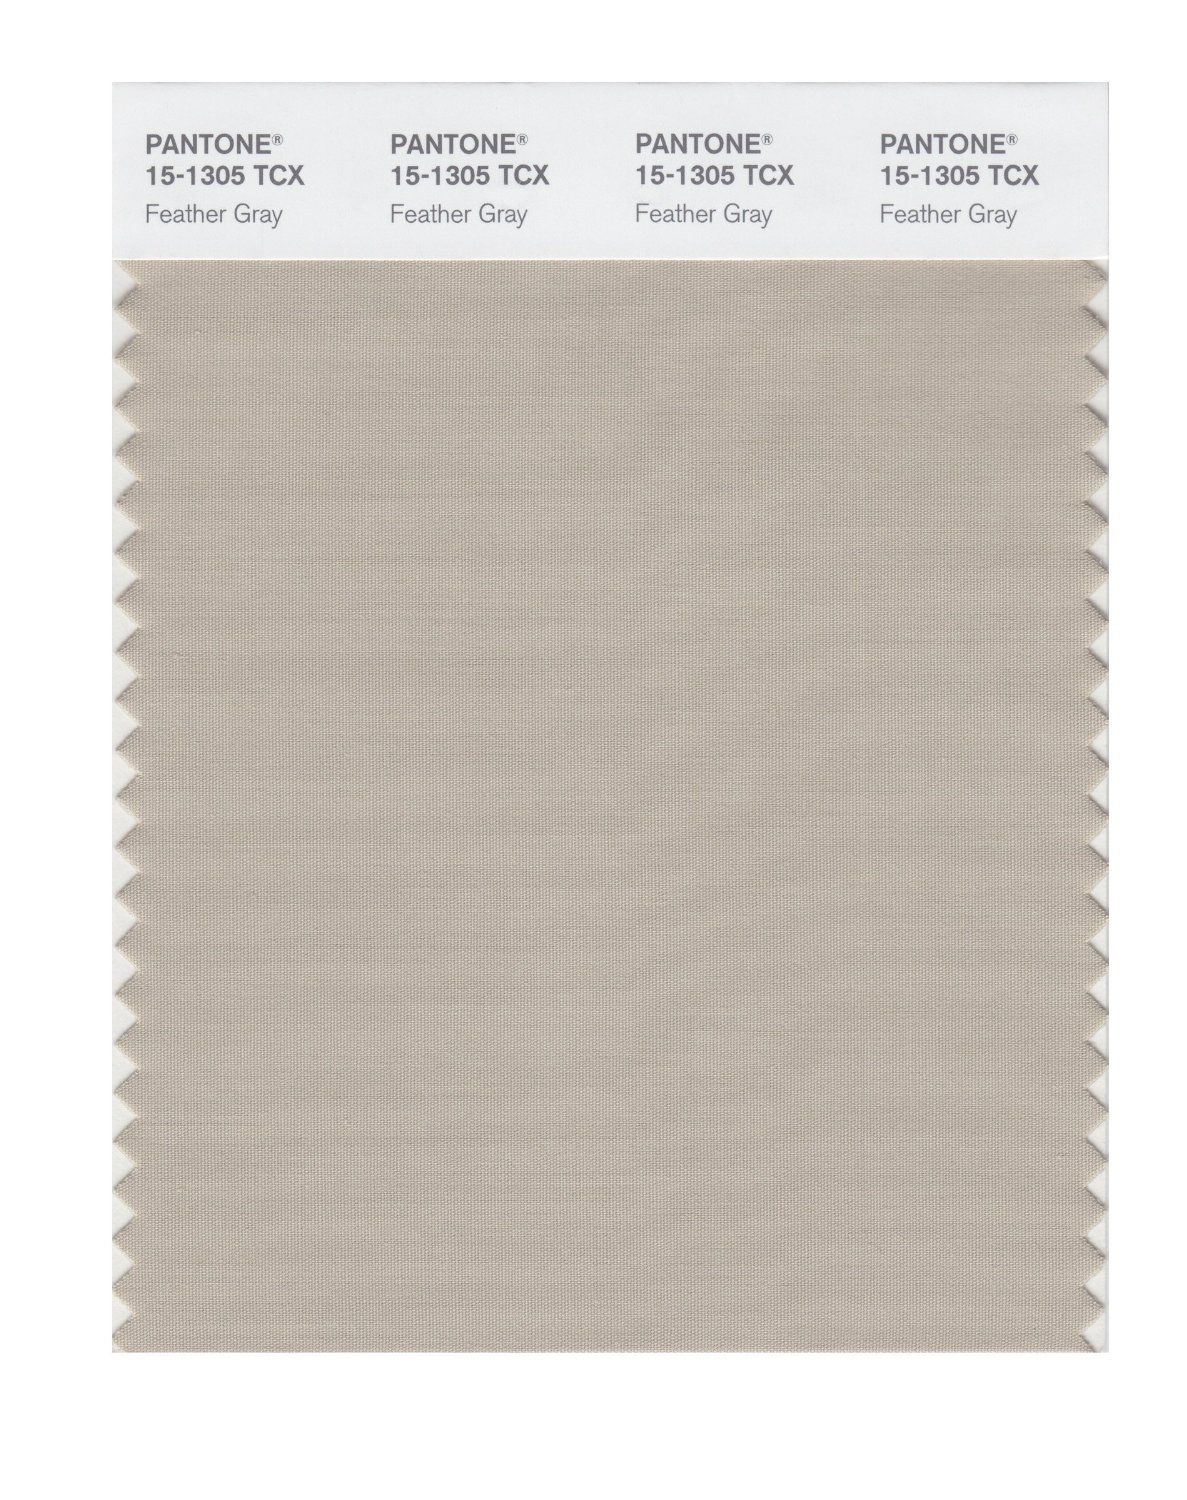 Pantone Smart Swatch 15-1305 Feather Gray